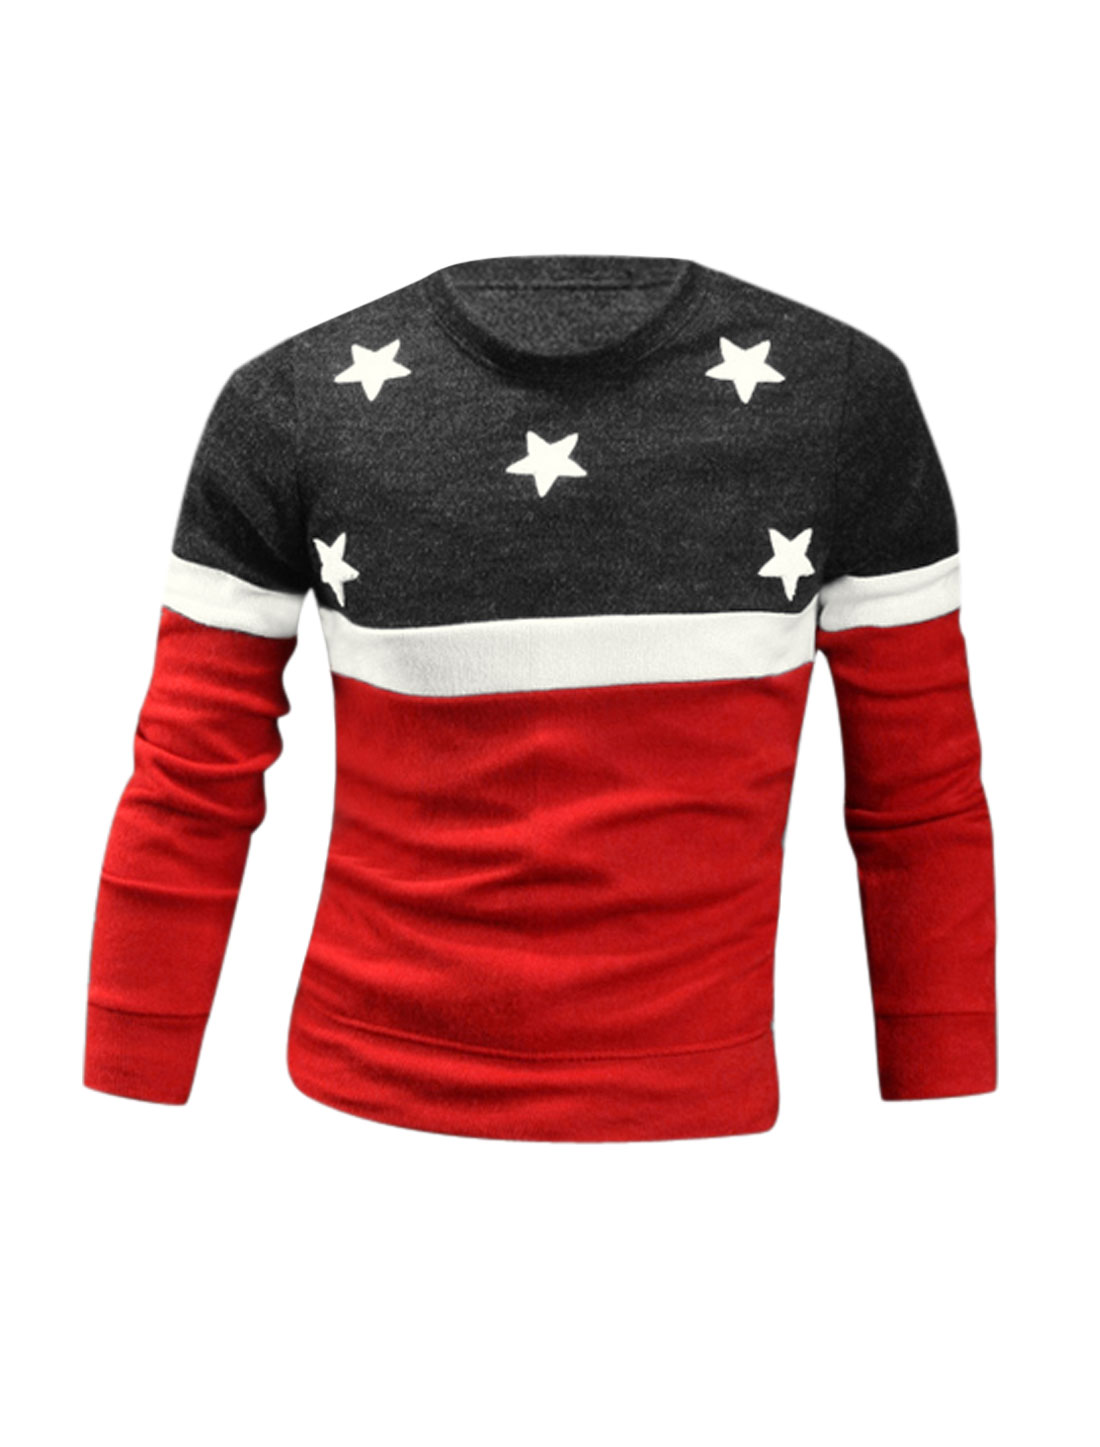 Men Red Dark Gray Round Neck Stars Applique Color Bock Pullover Knit Shirt M